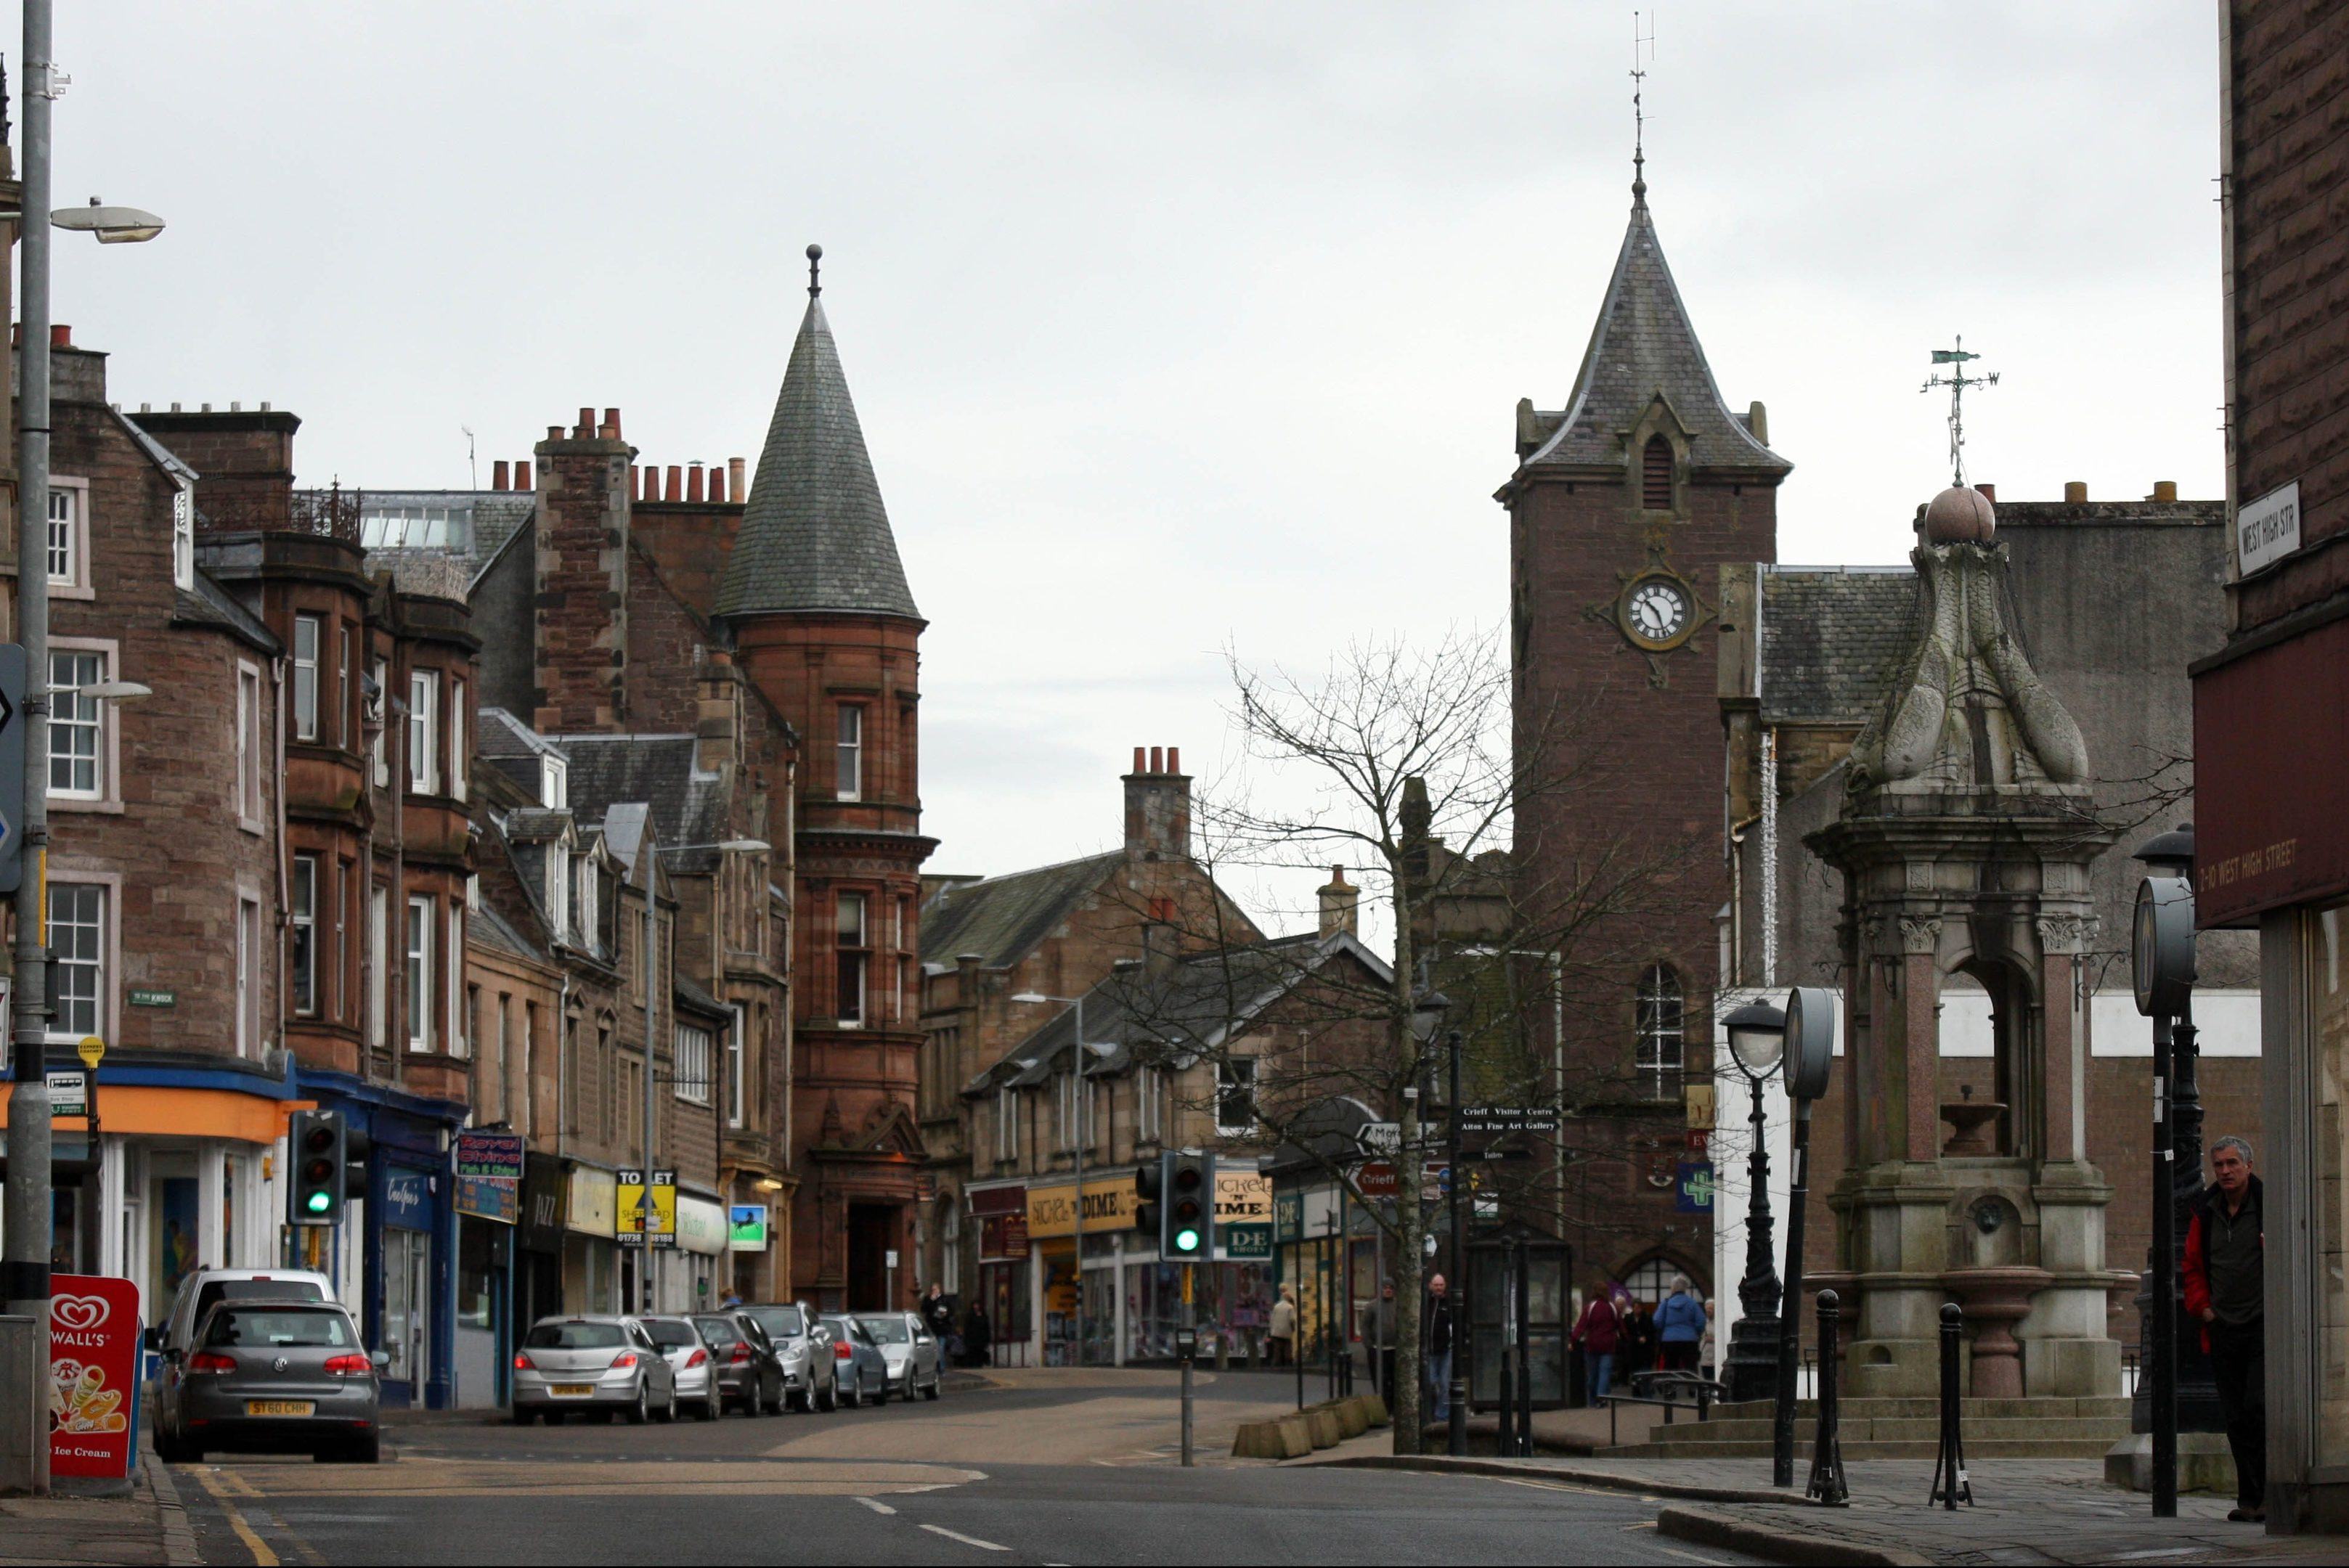 Businesses in Crieff have claimed new High Street parking rules have hit their trade.